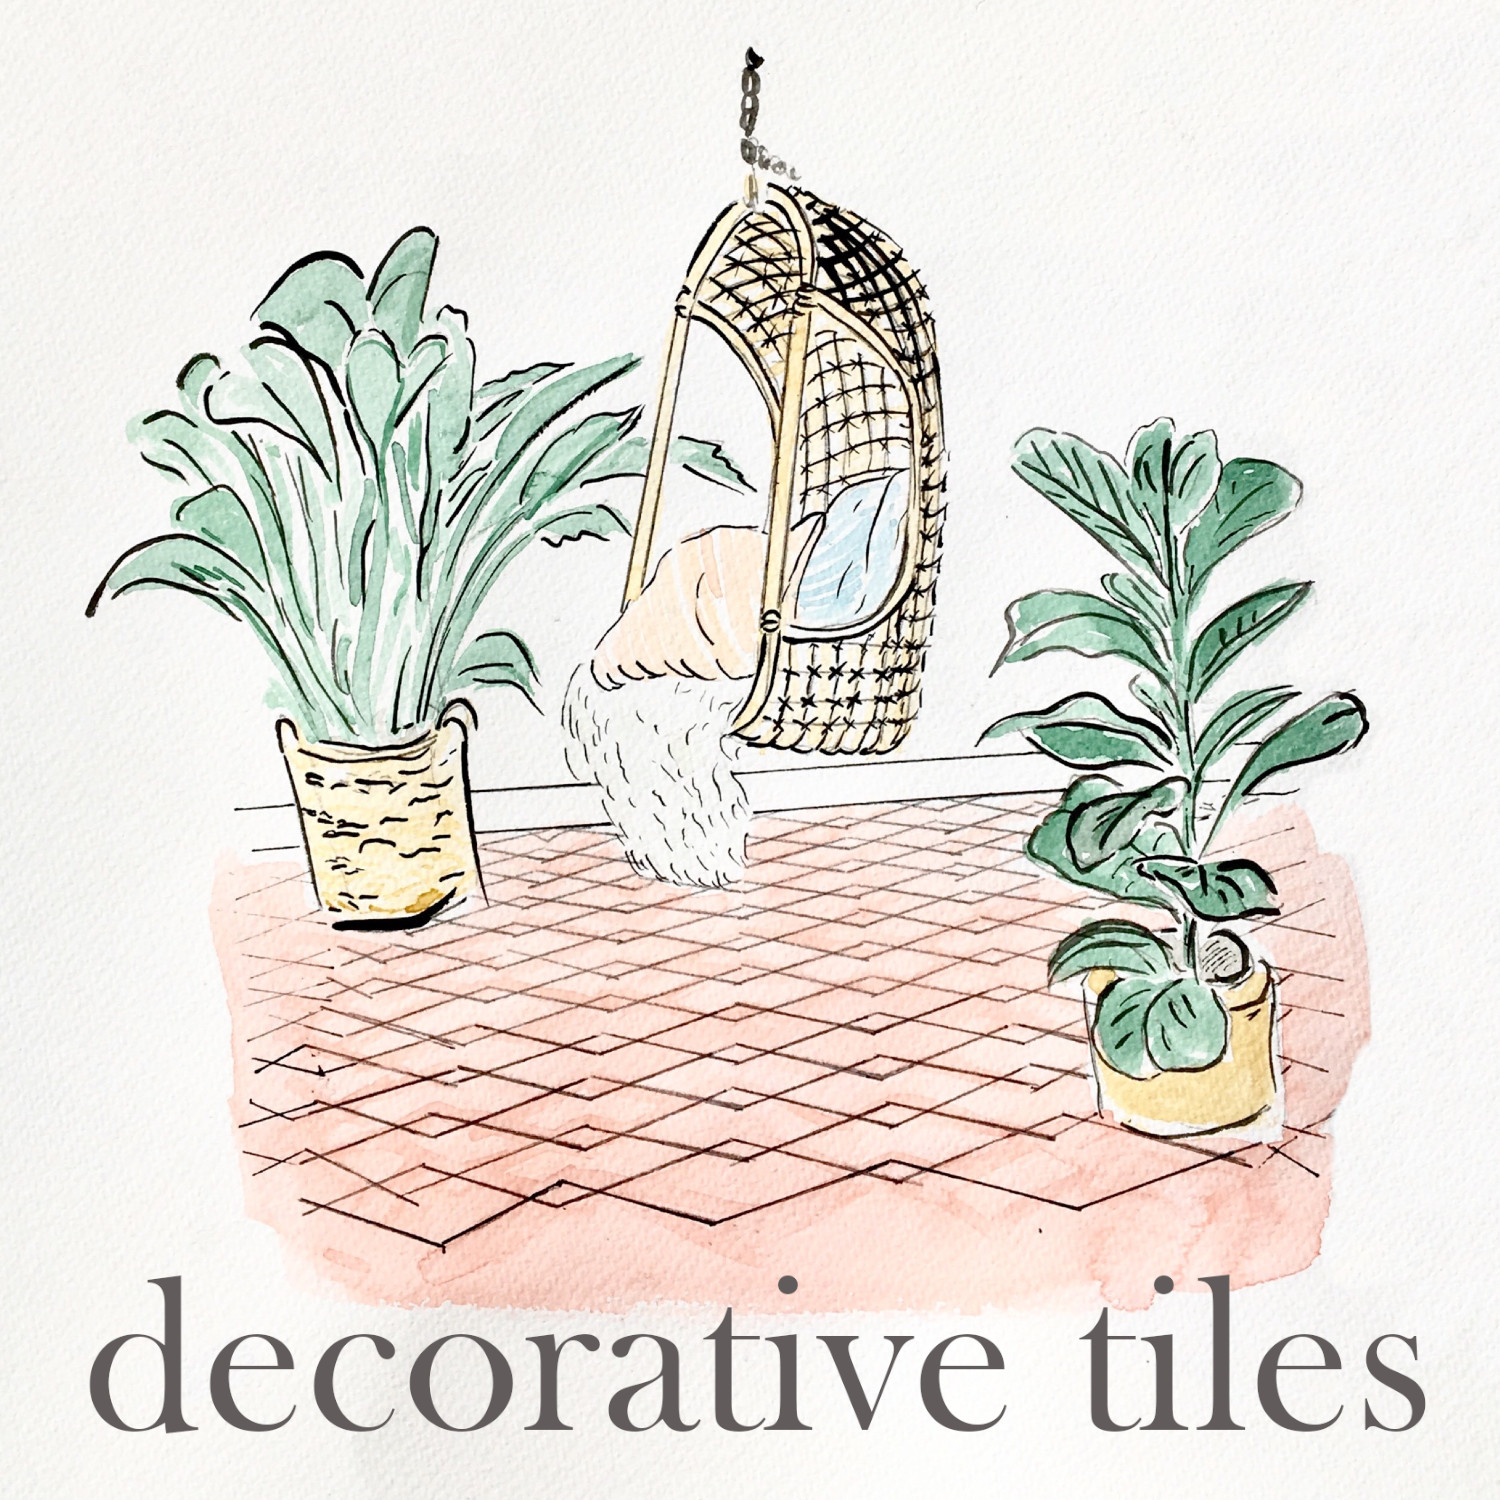 Decorative Wall Tiles.jpg